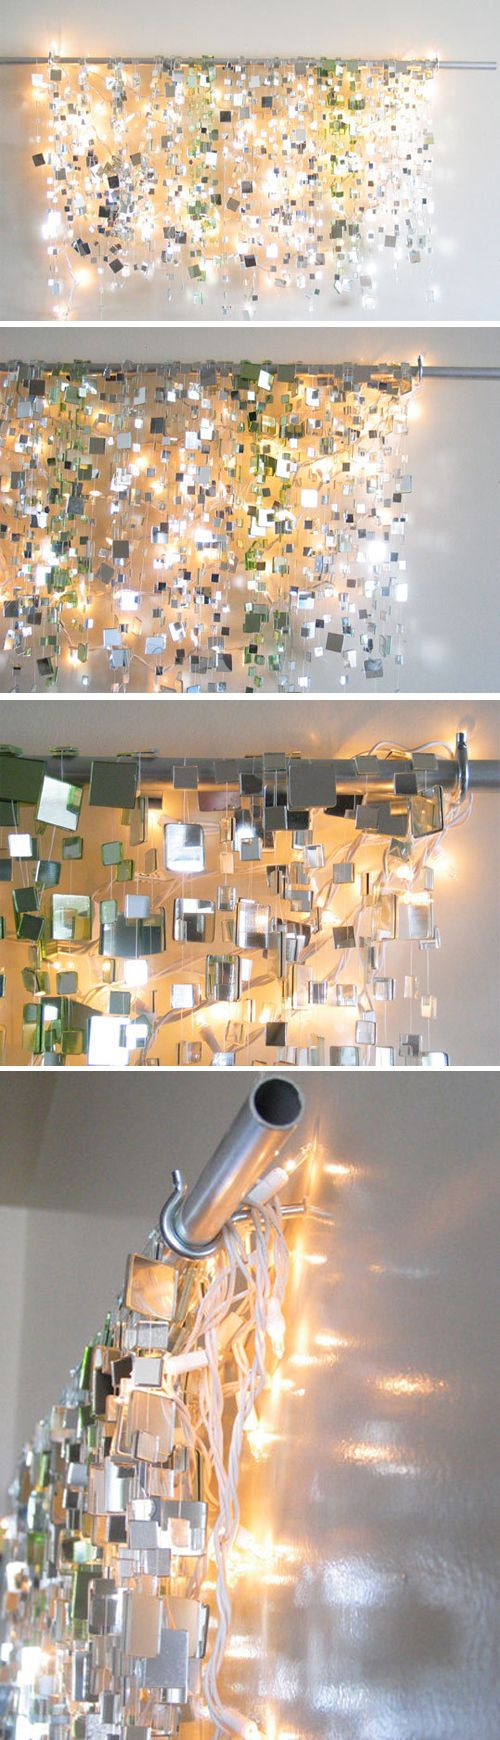 Small mirror tiles glued to fishing line with  lights behind. This is fantastic.  Want for m room!